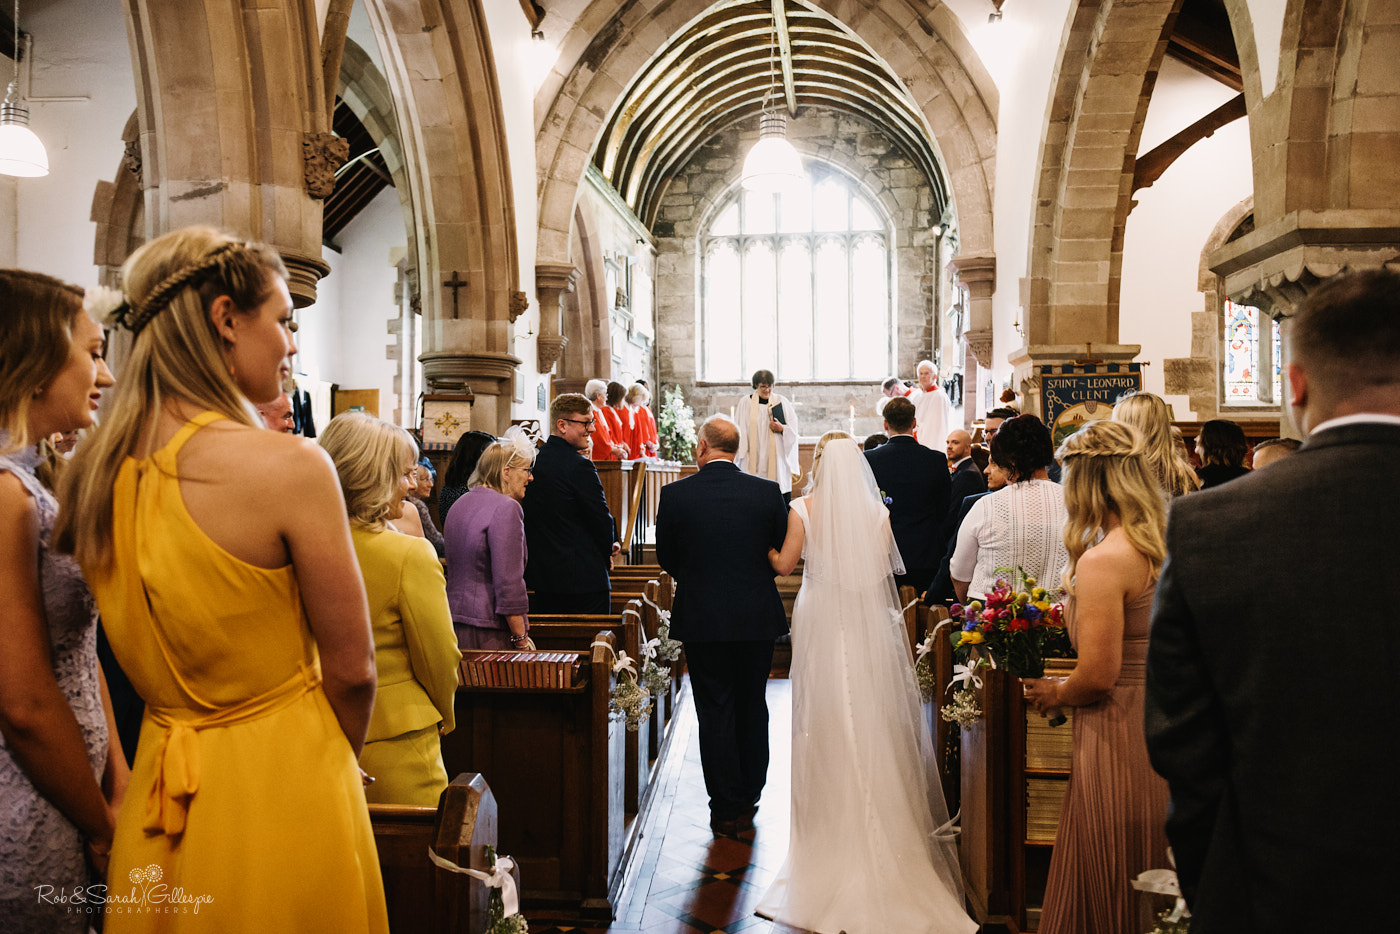 Bride and dad walk up aisle for wedding at St Leonard's church Clent